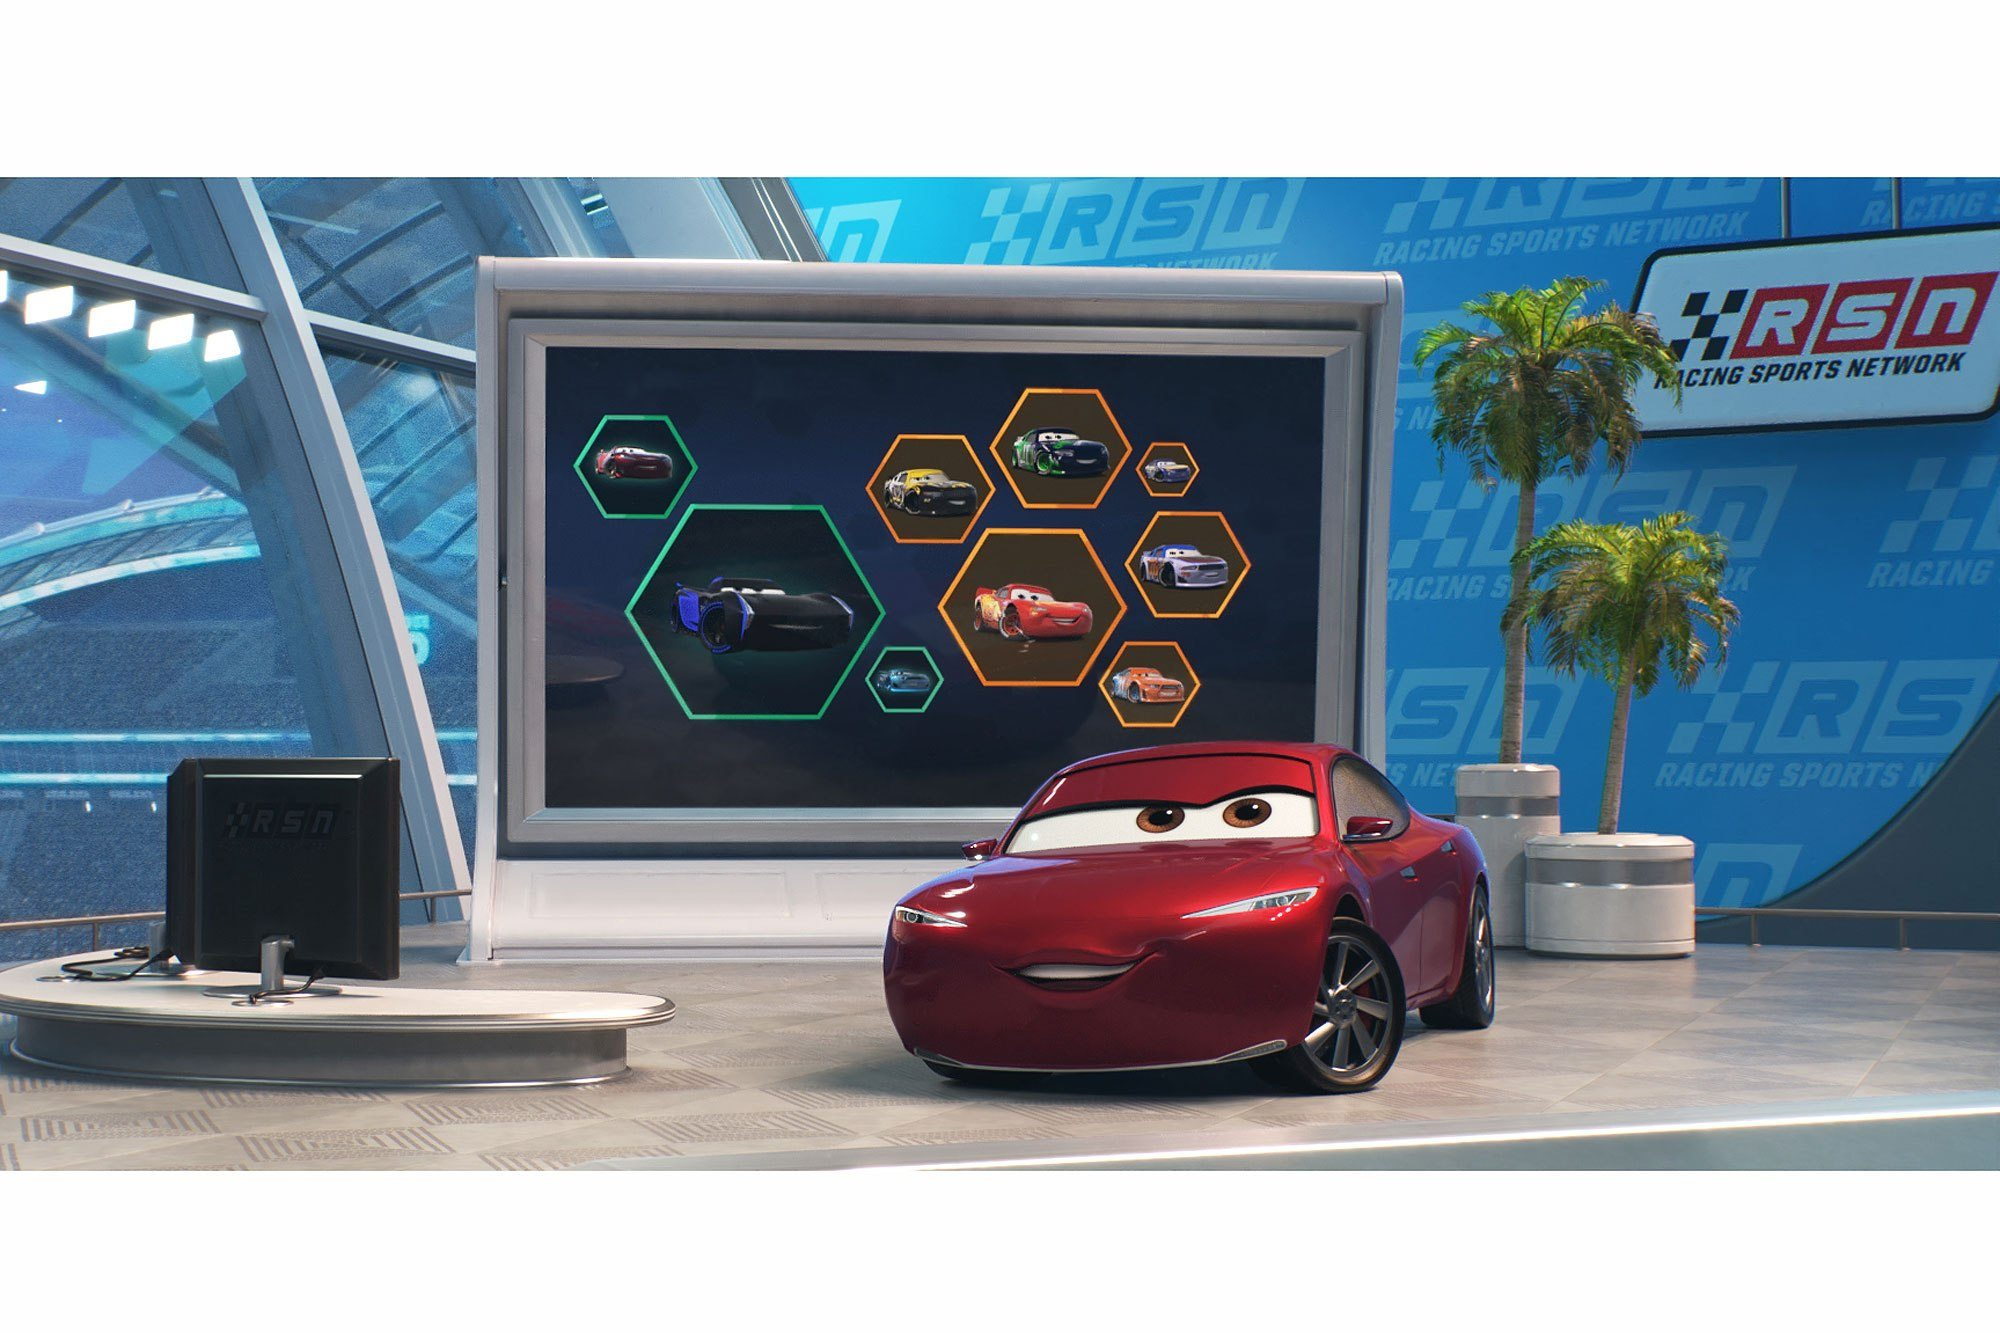 Who Are These New 'Cars 3' Characters? – The Pixar Detectives